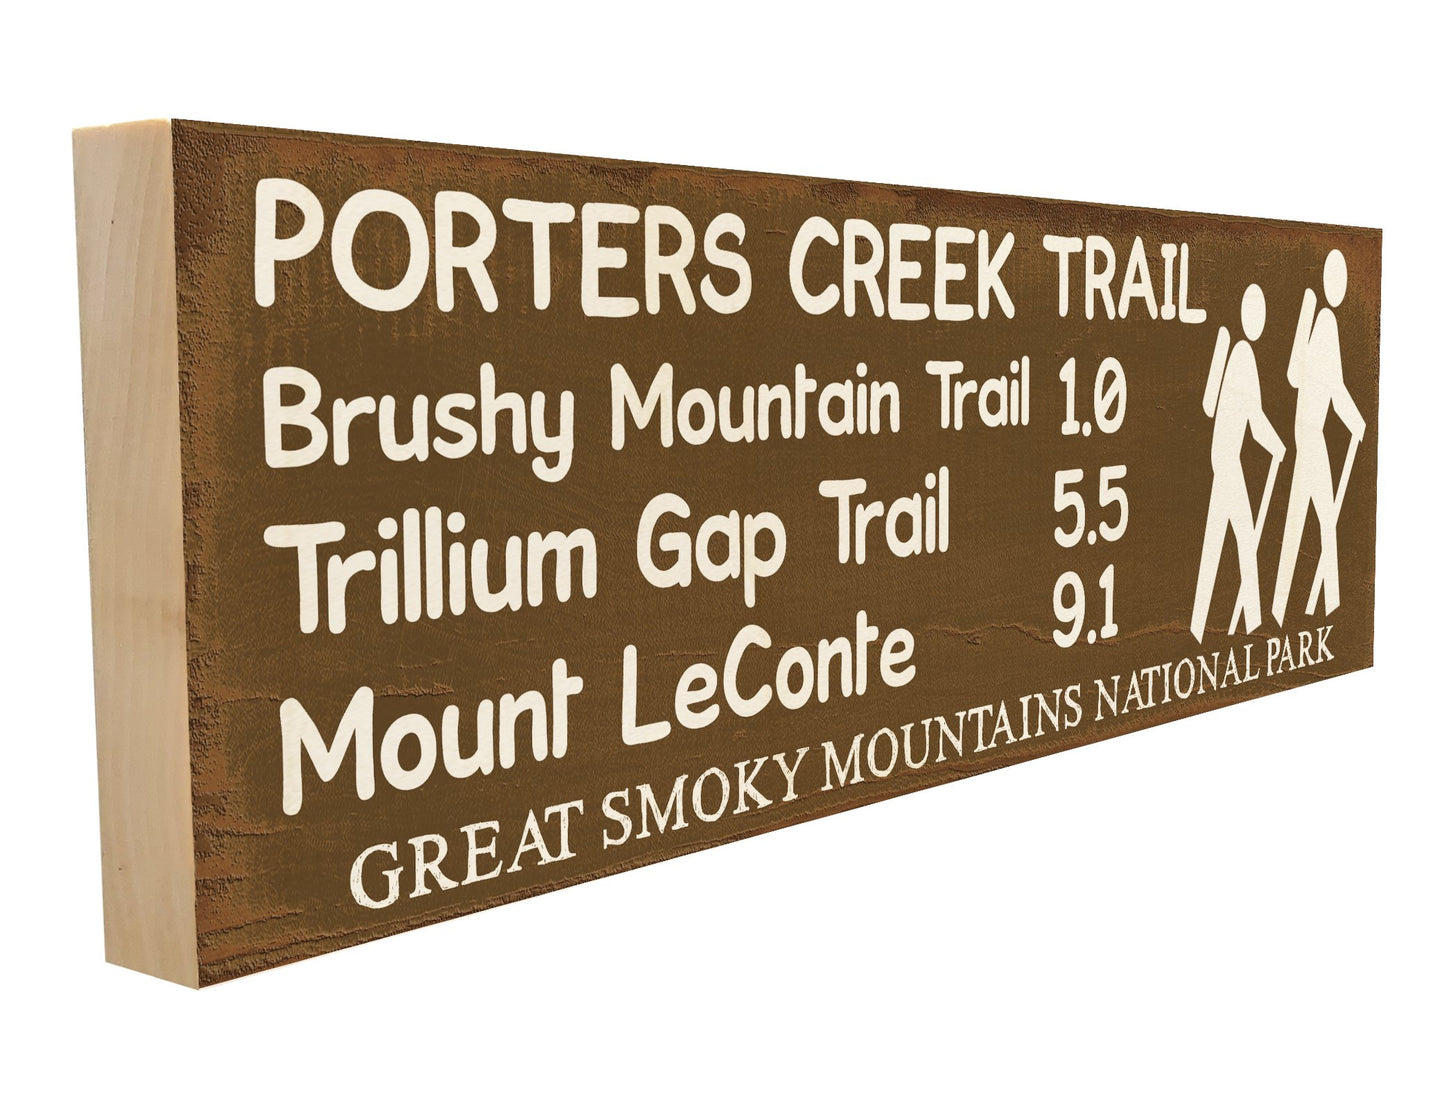 Porters Creek Trail. Brushy Mountain Trail 1.0 Trillium Gap Trail 5.5 Mount LeConte 9.1 Great Smoky Mountains National Park.